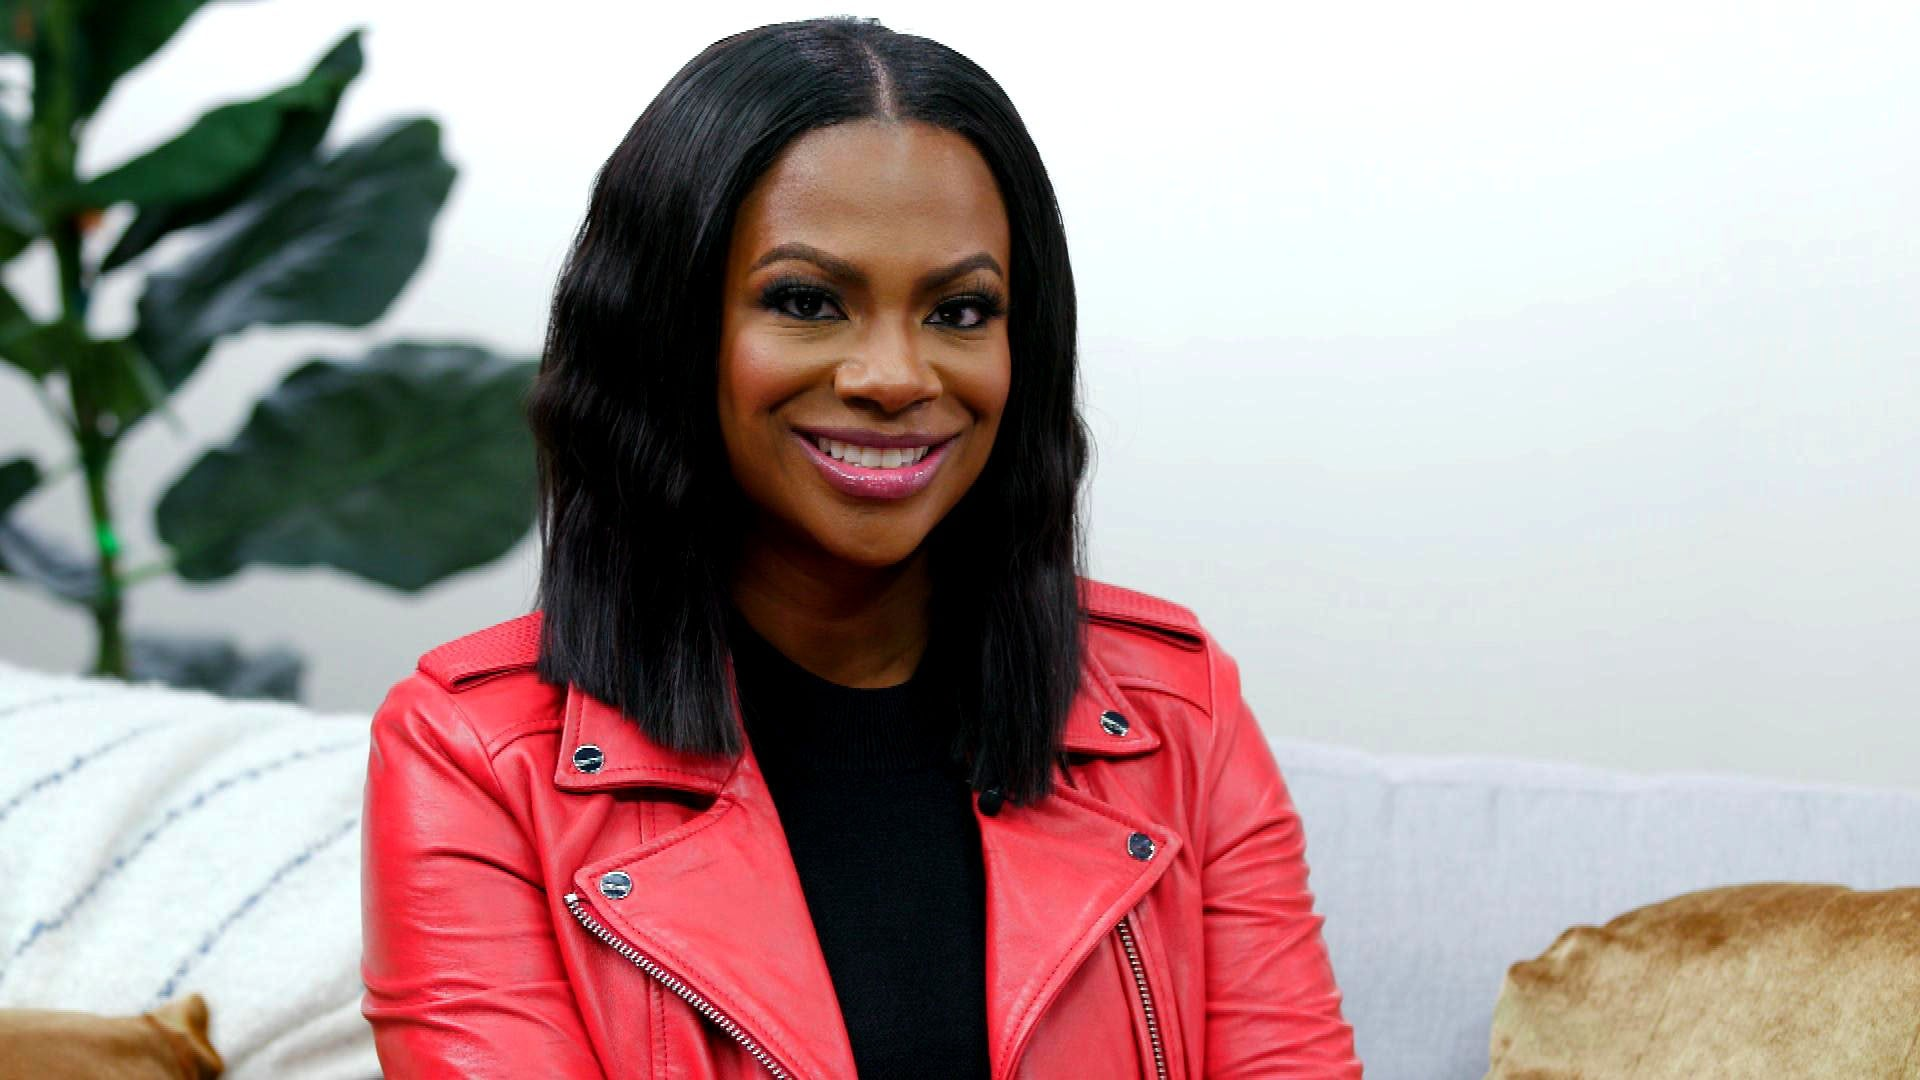 kandi-burruss-shows-off-a-new-look-in-this-latest-dress